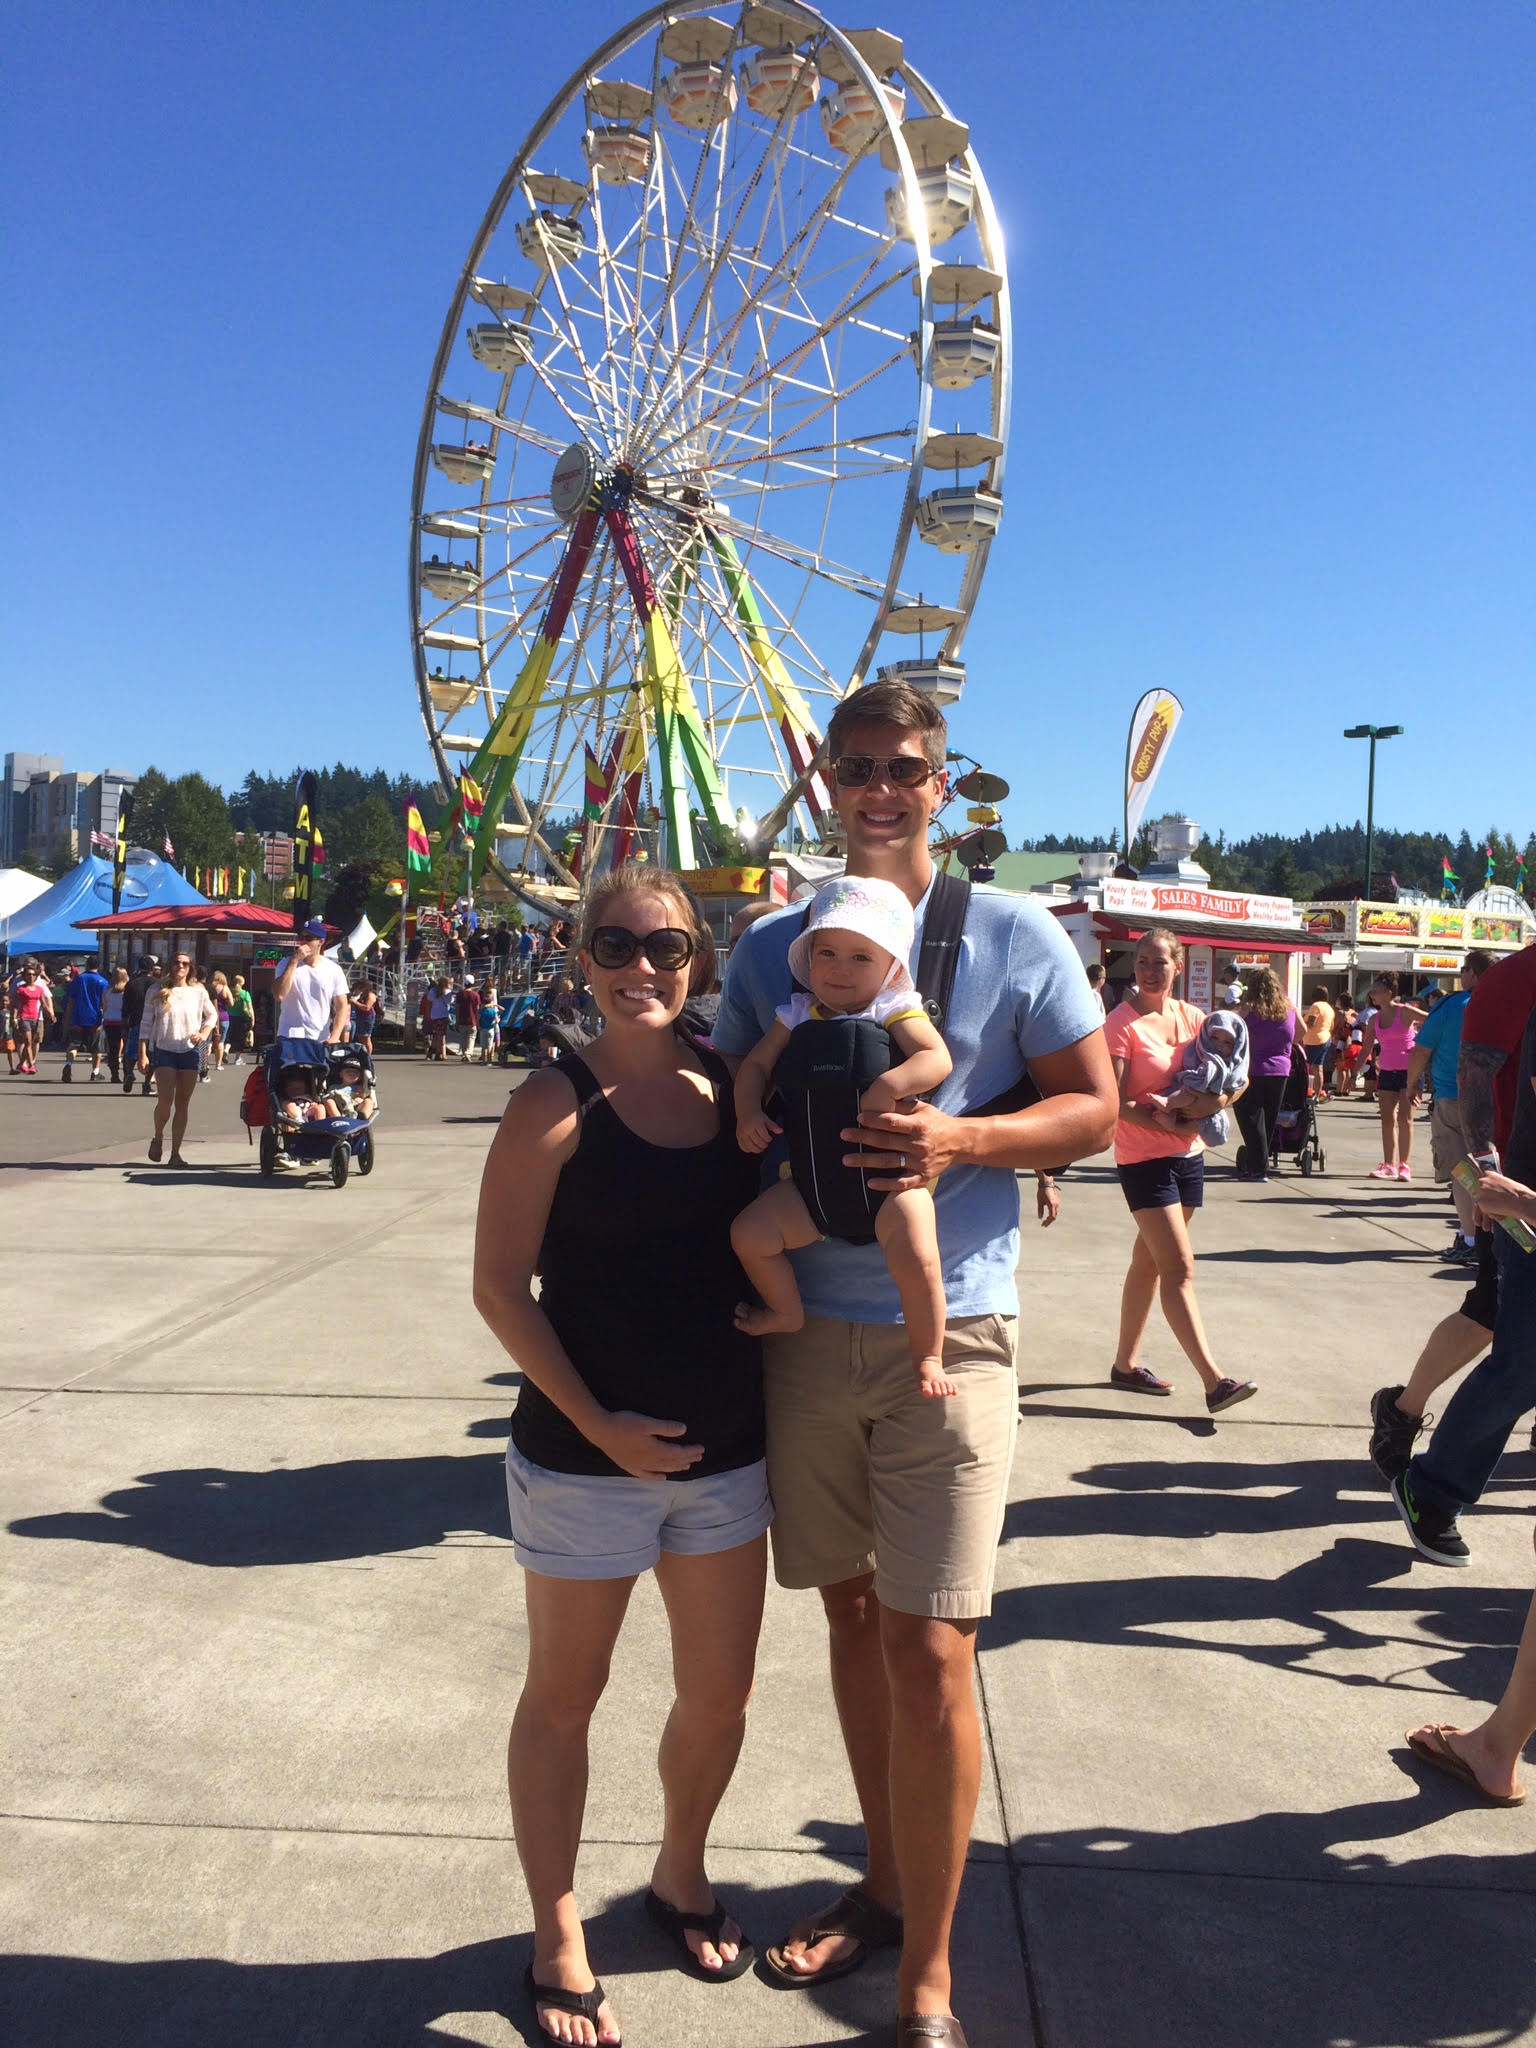 Pregnant me, Chris & Olivia at the Washington State Fair in Puyallup, WA. September 2014